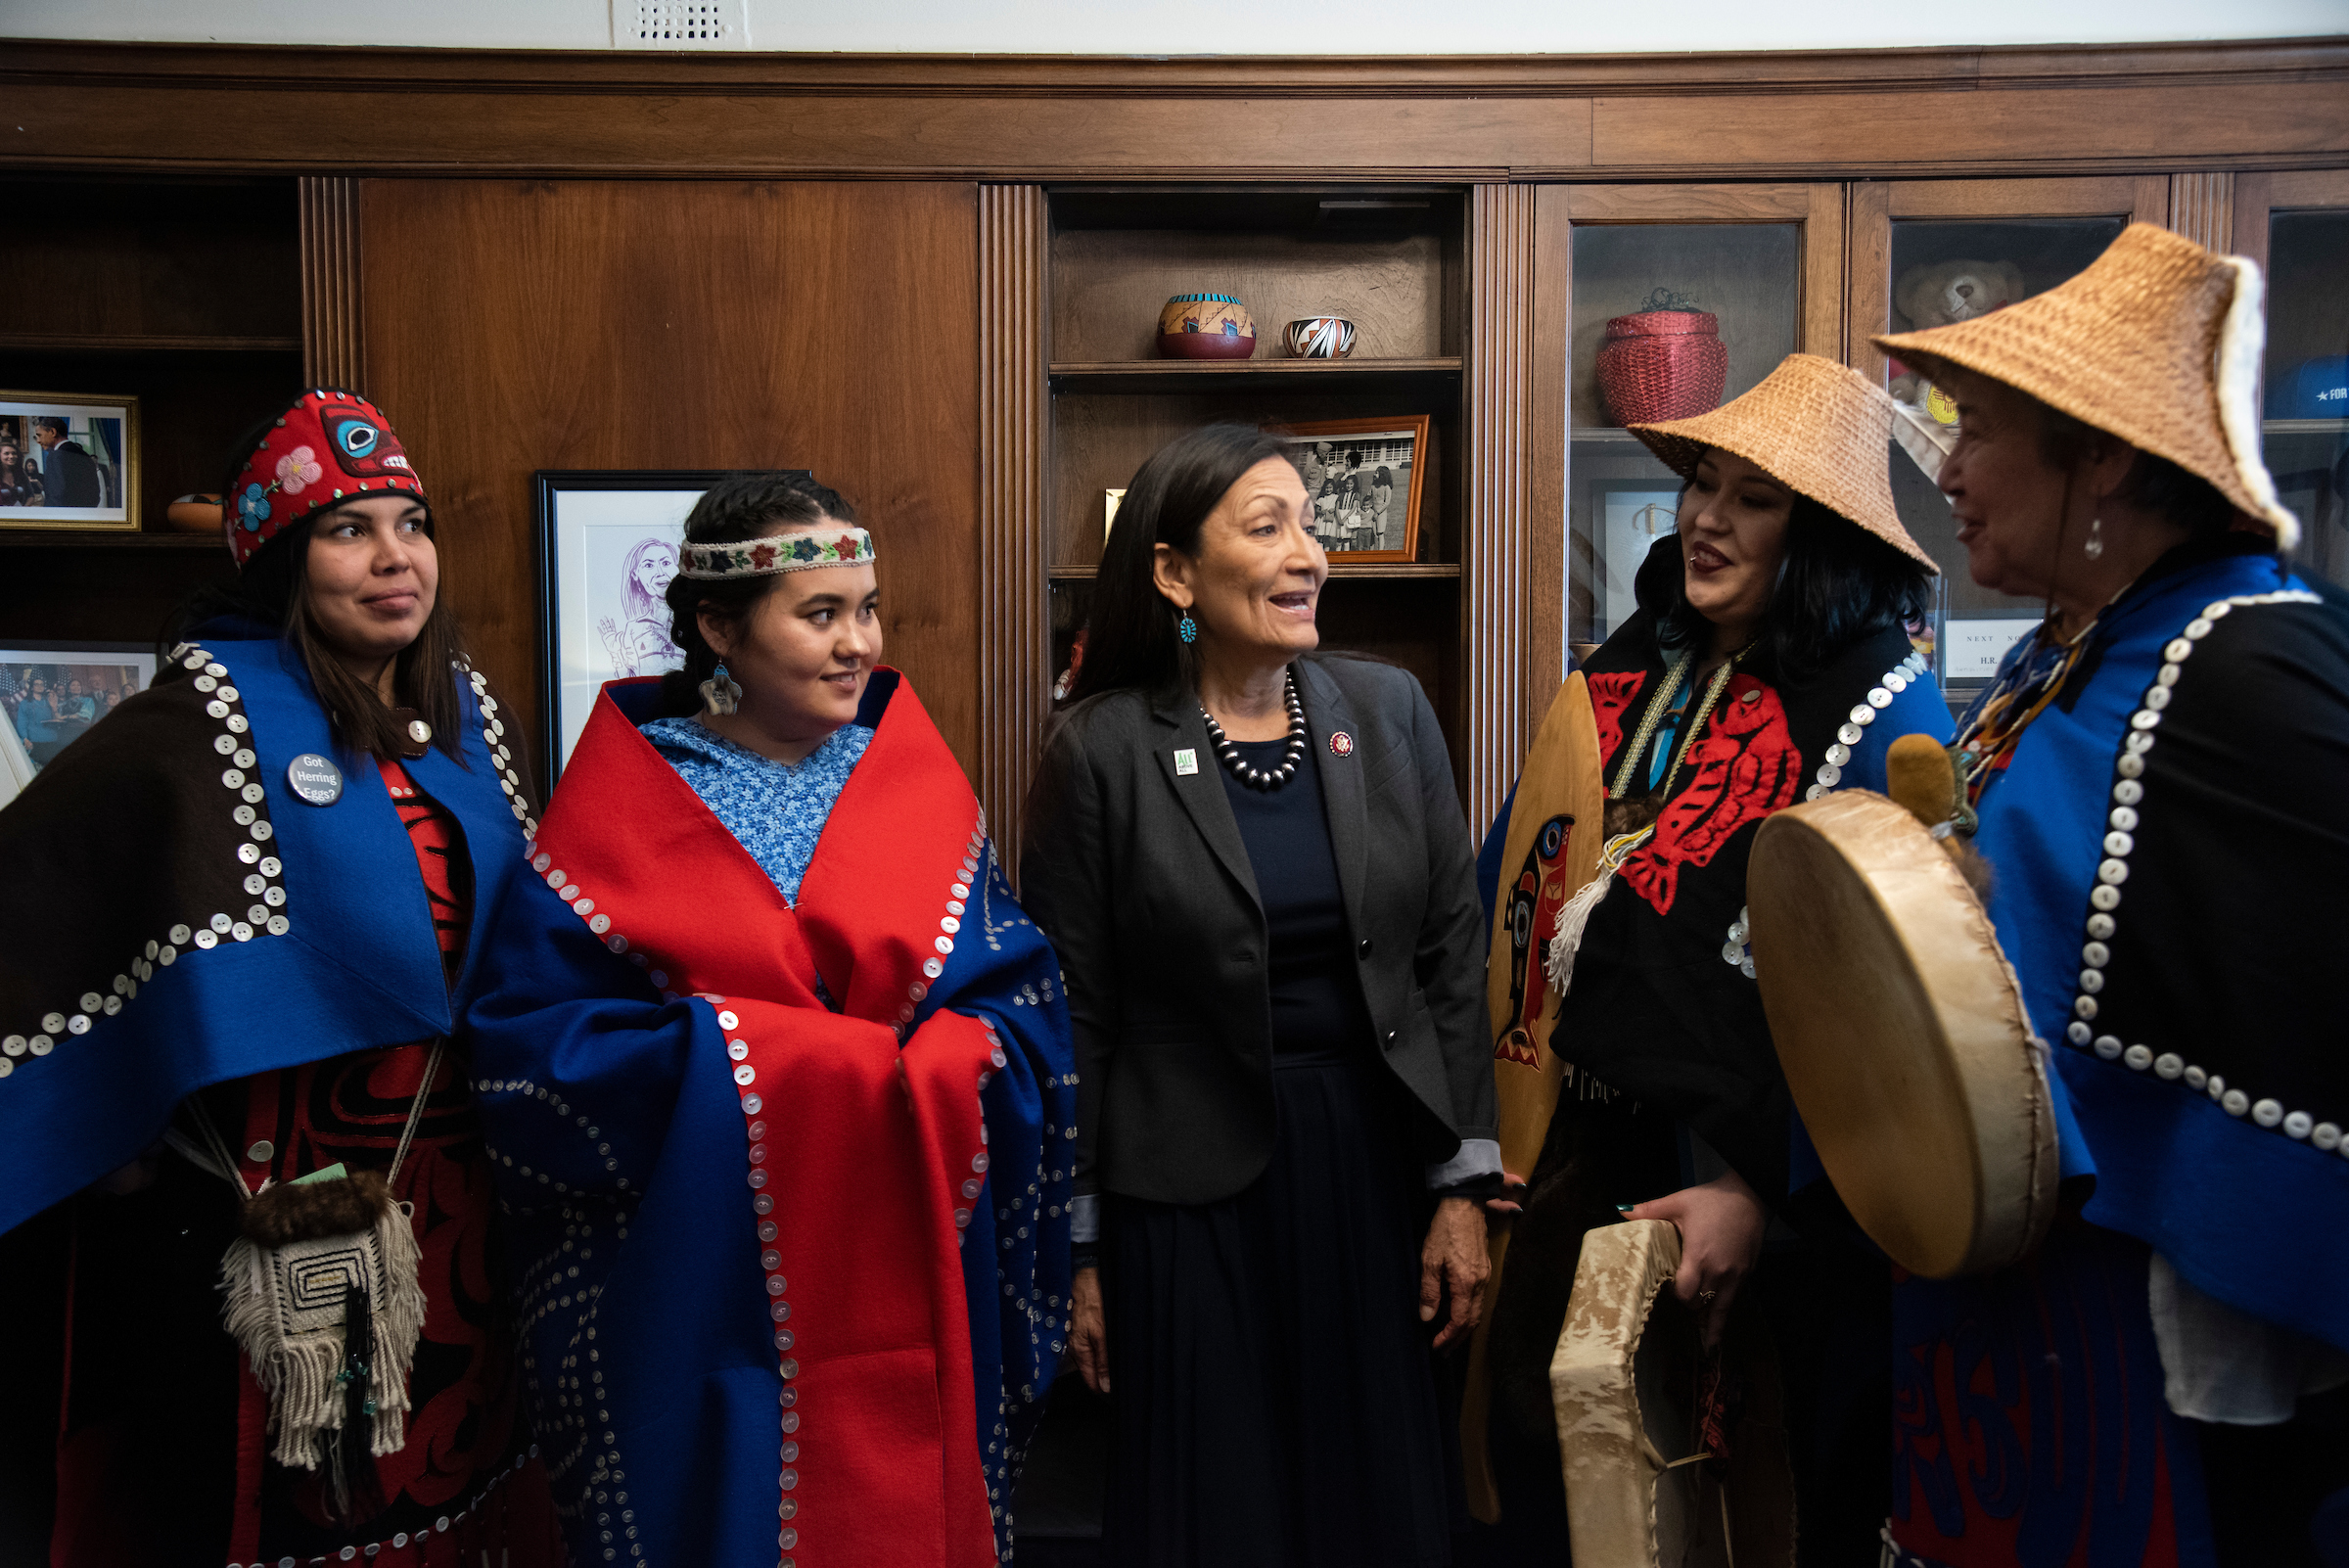 The delegation meets with New Mexico Rep. Deb Haaland, one of the first two Indigenous women ever elected to Congress